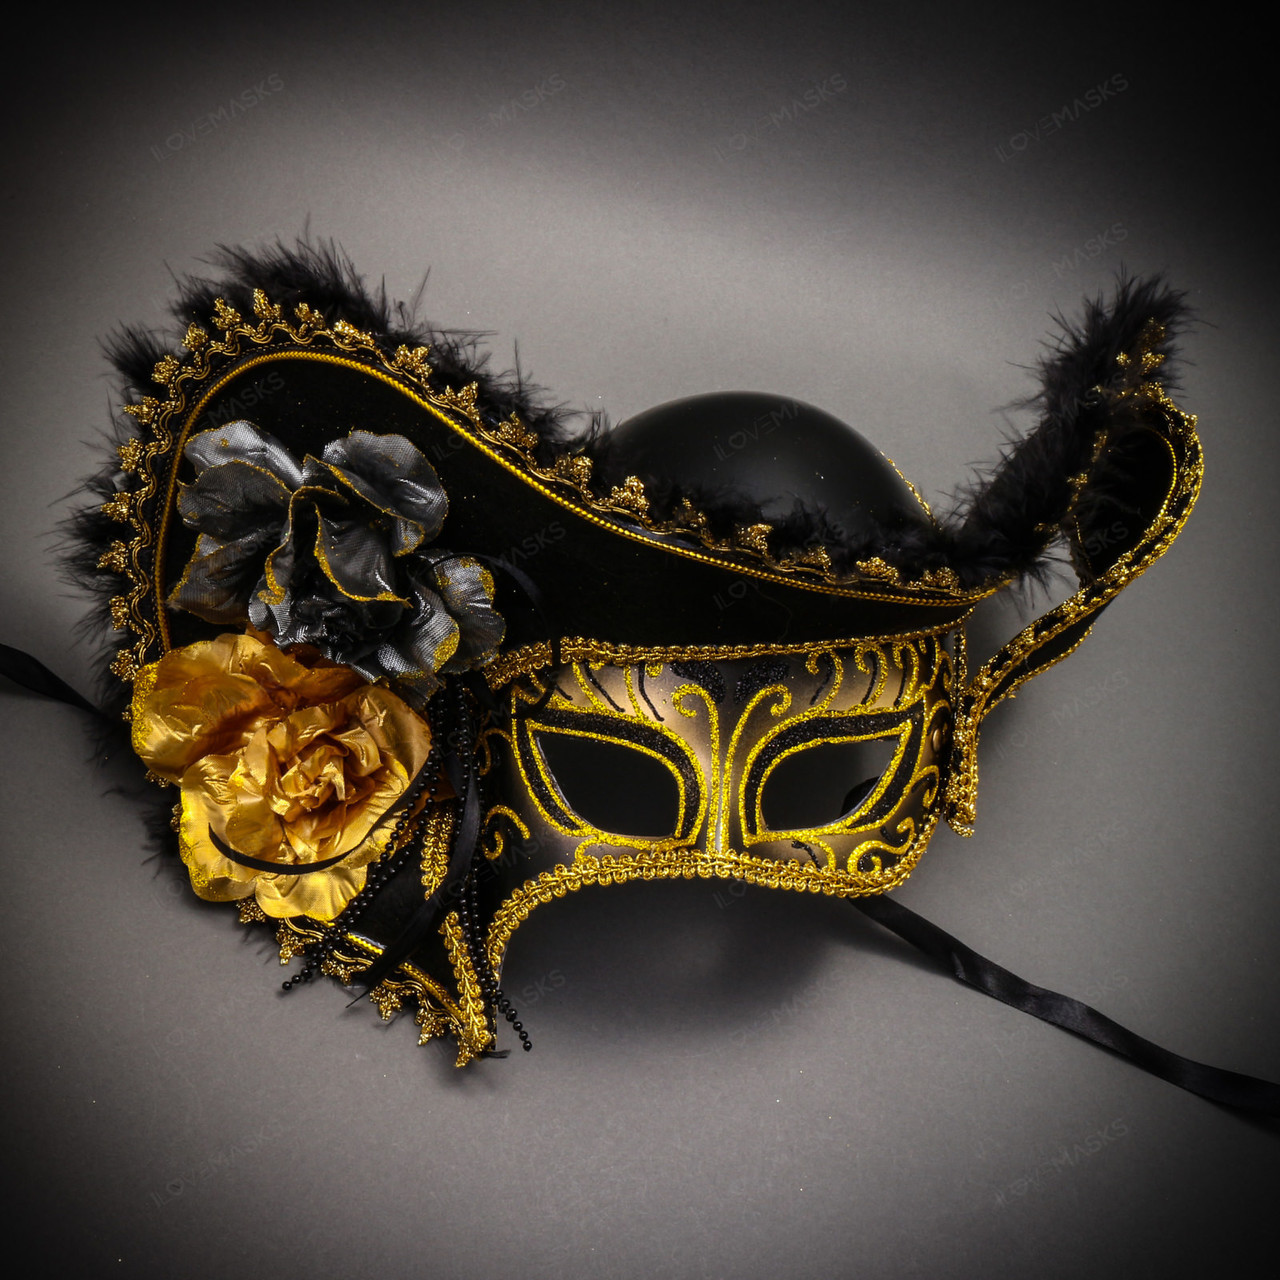 Face Mask Classic Venetian Masquerade Half for Party Costume Lovely Women//Men